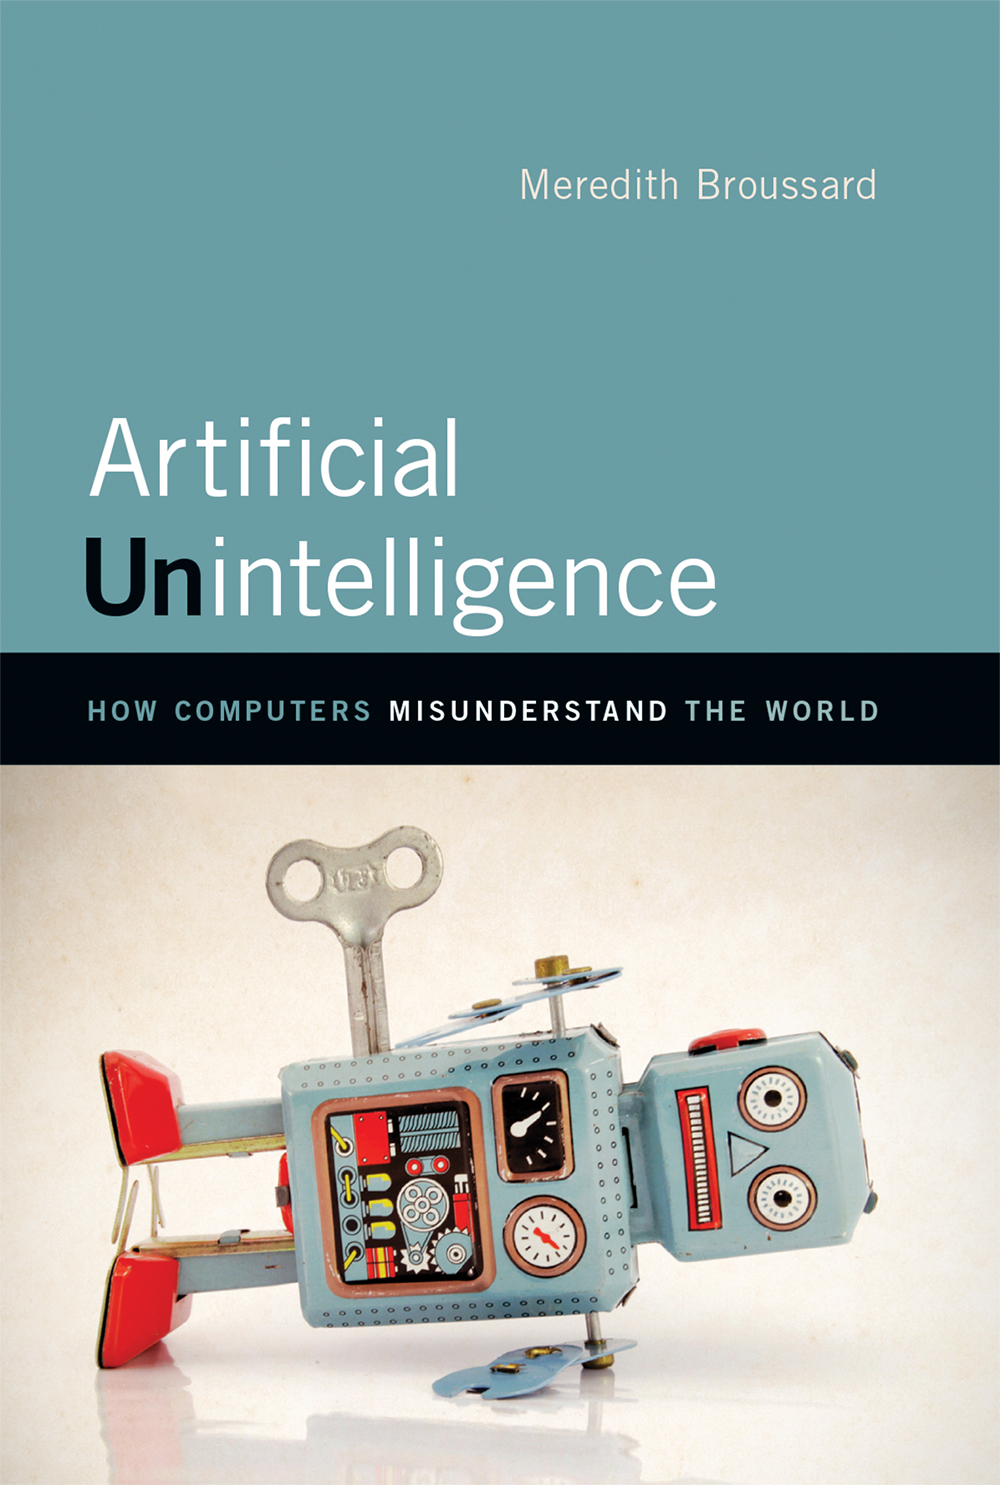 Artificial Unintelligence How Computers Misunderstand the World - Meredith Broussard